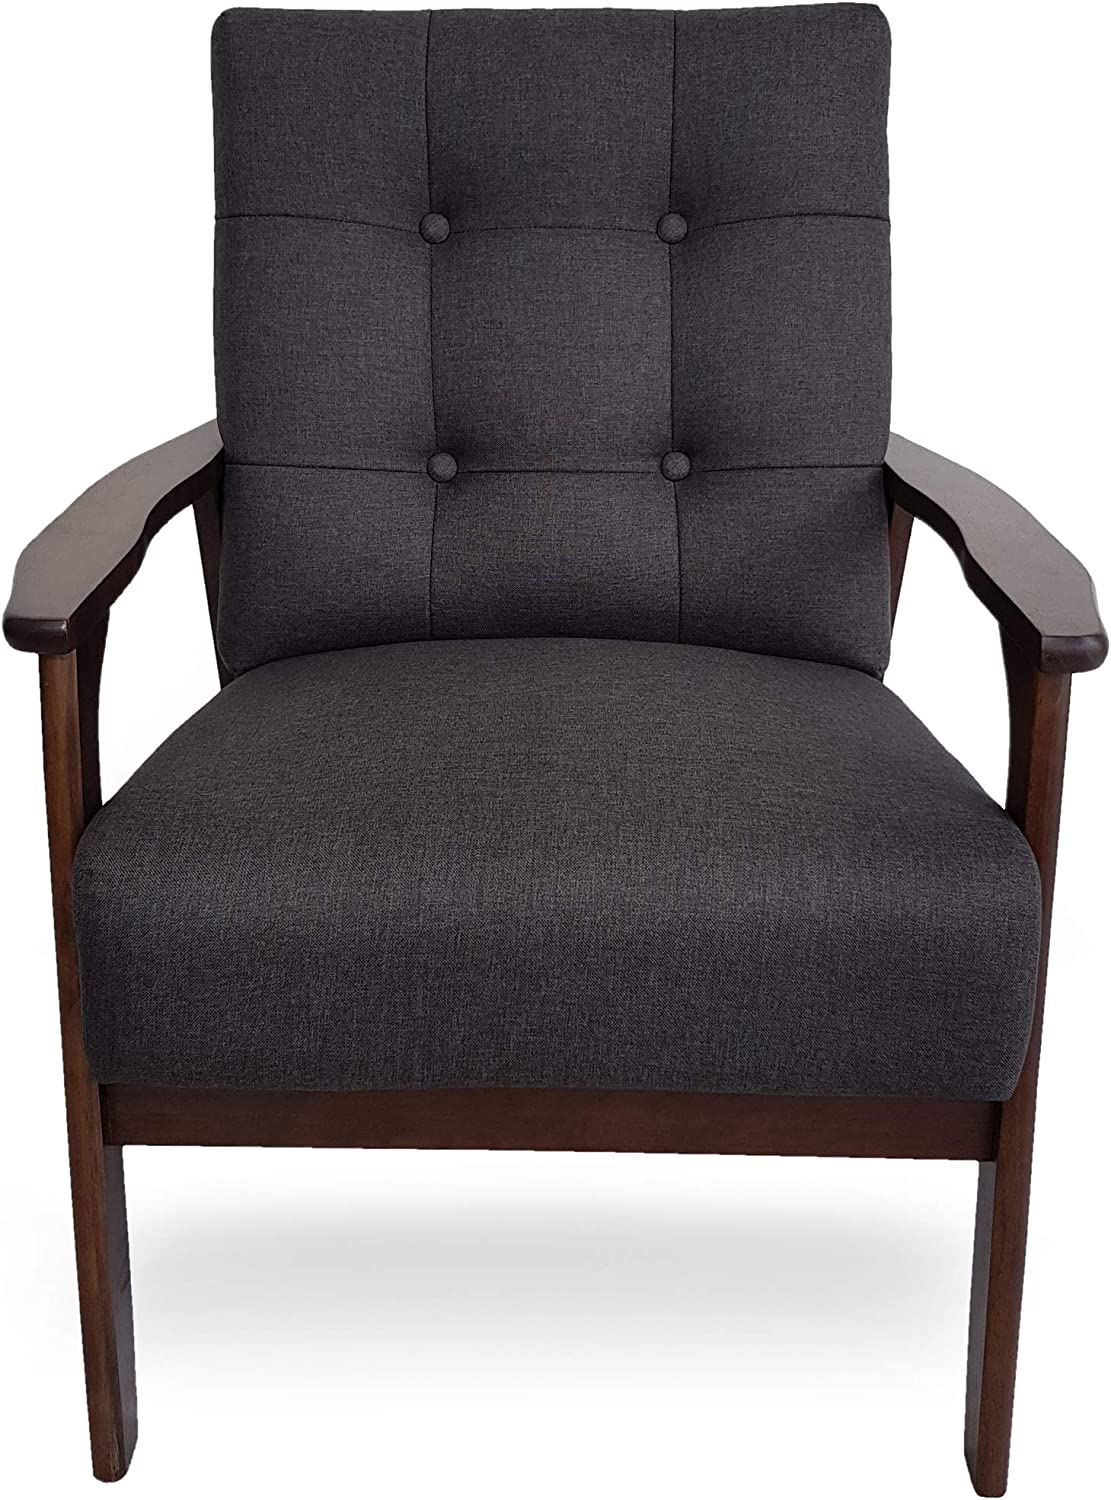 Christopher Knight Home Athena Mid Century Waffle Stitch Tufted Accent Arm Chair with Rubberwood Legs-Black and Walnut Finish